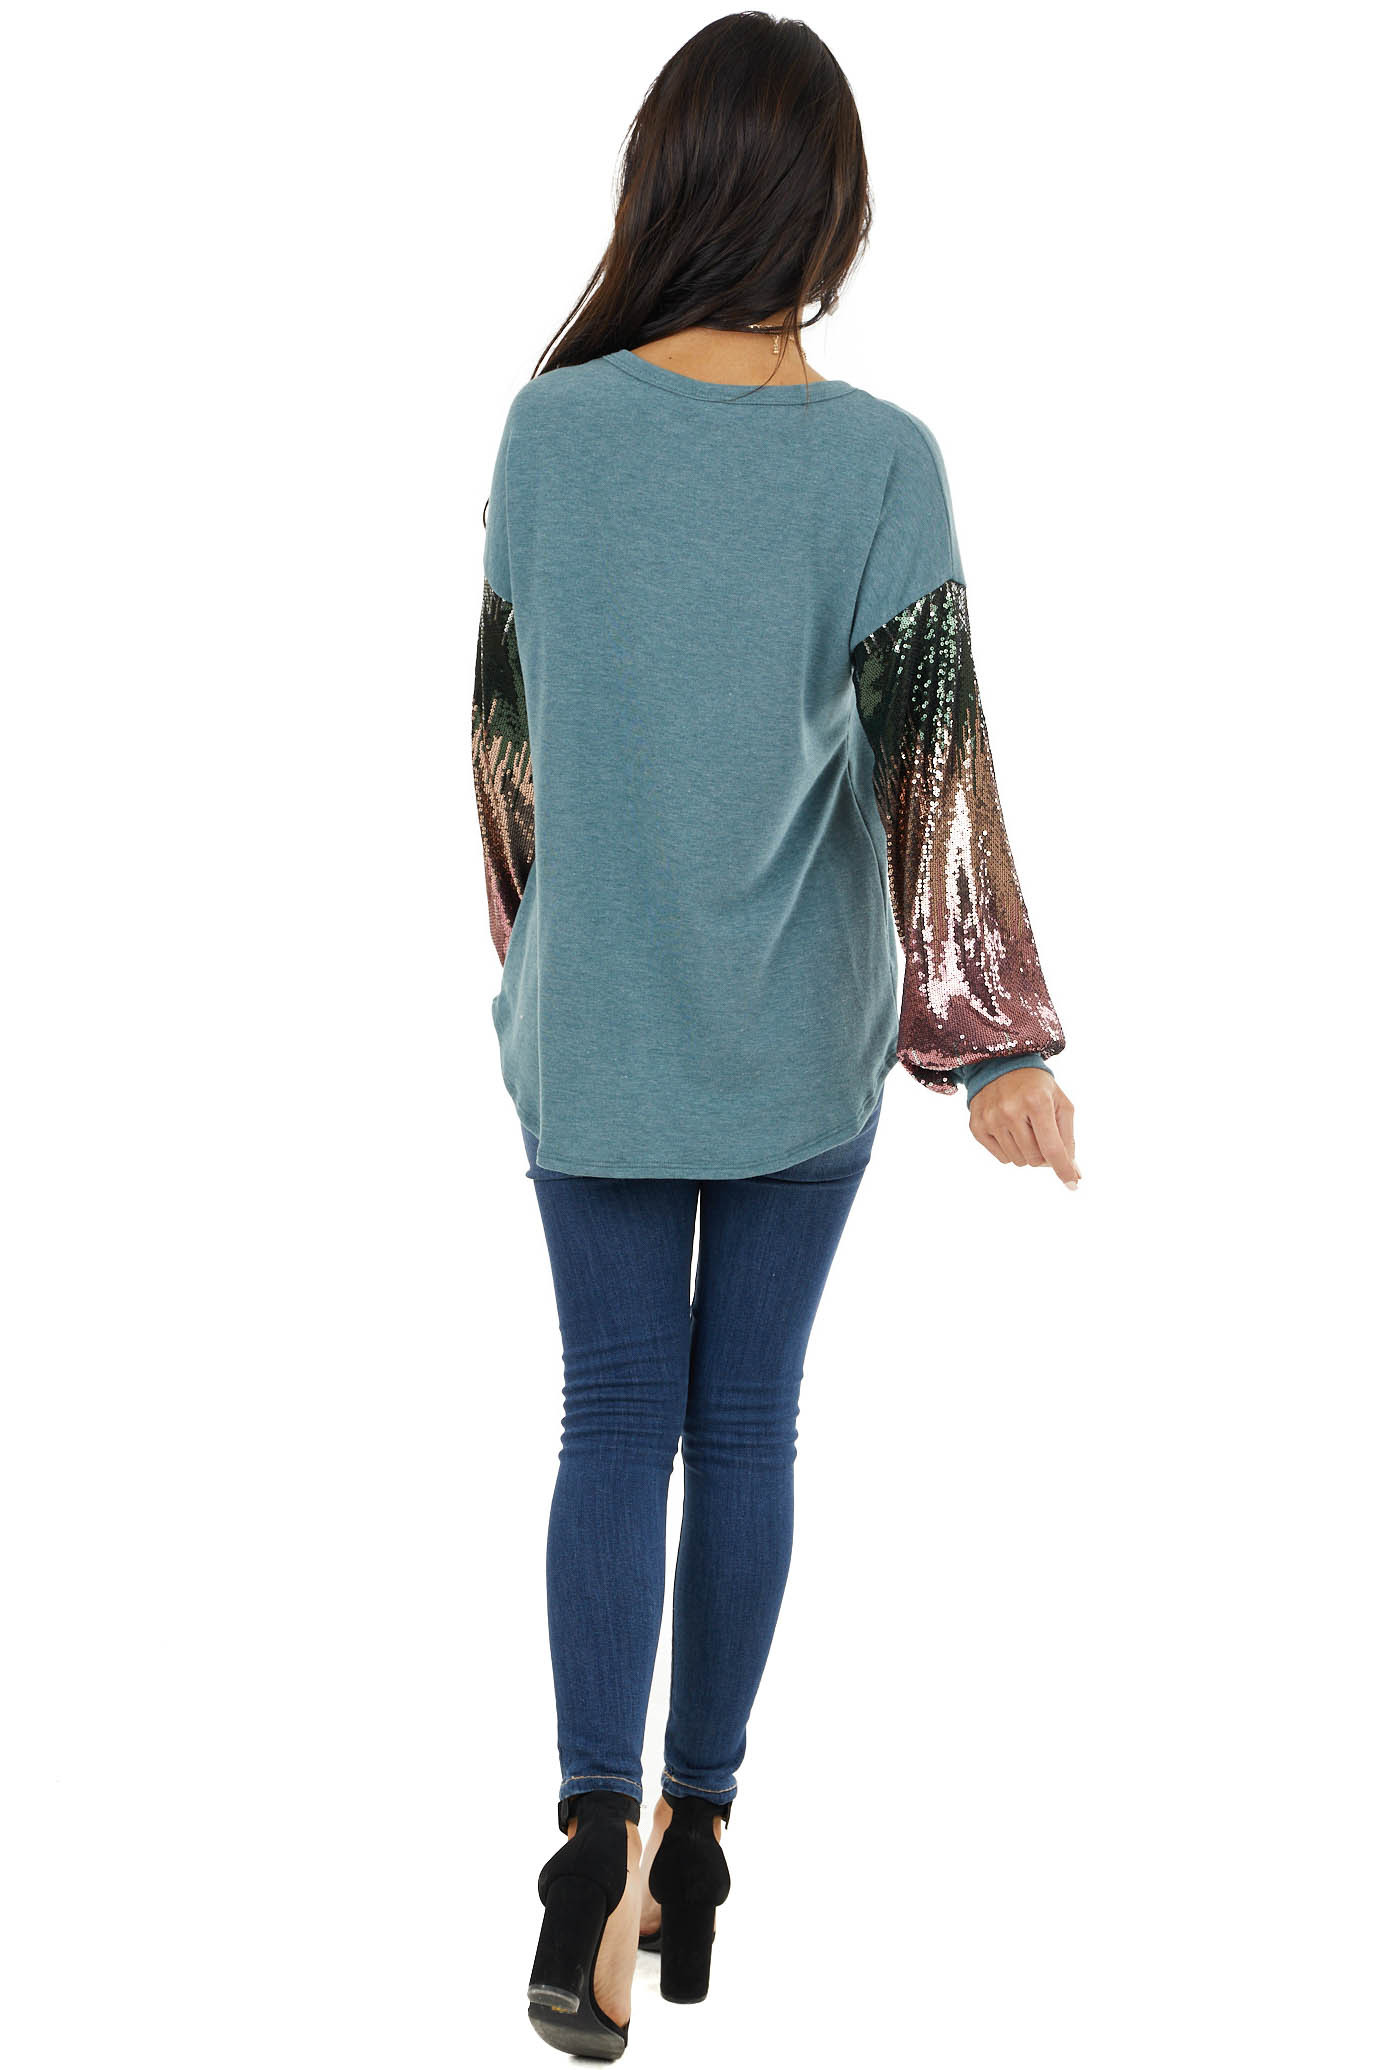 Light Pine Green Knit Top with Long Sequin Sleeves